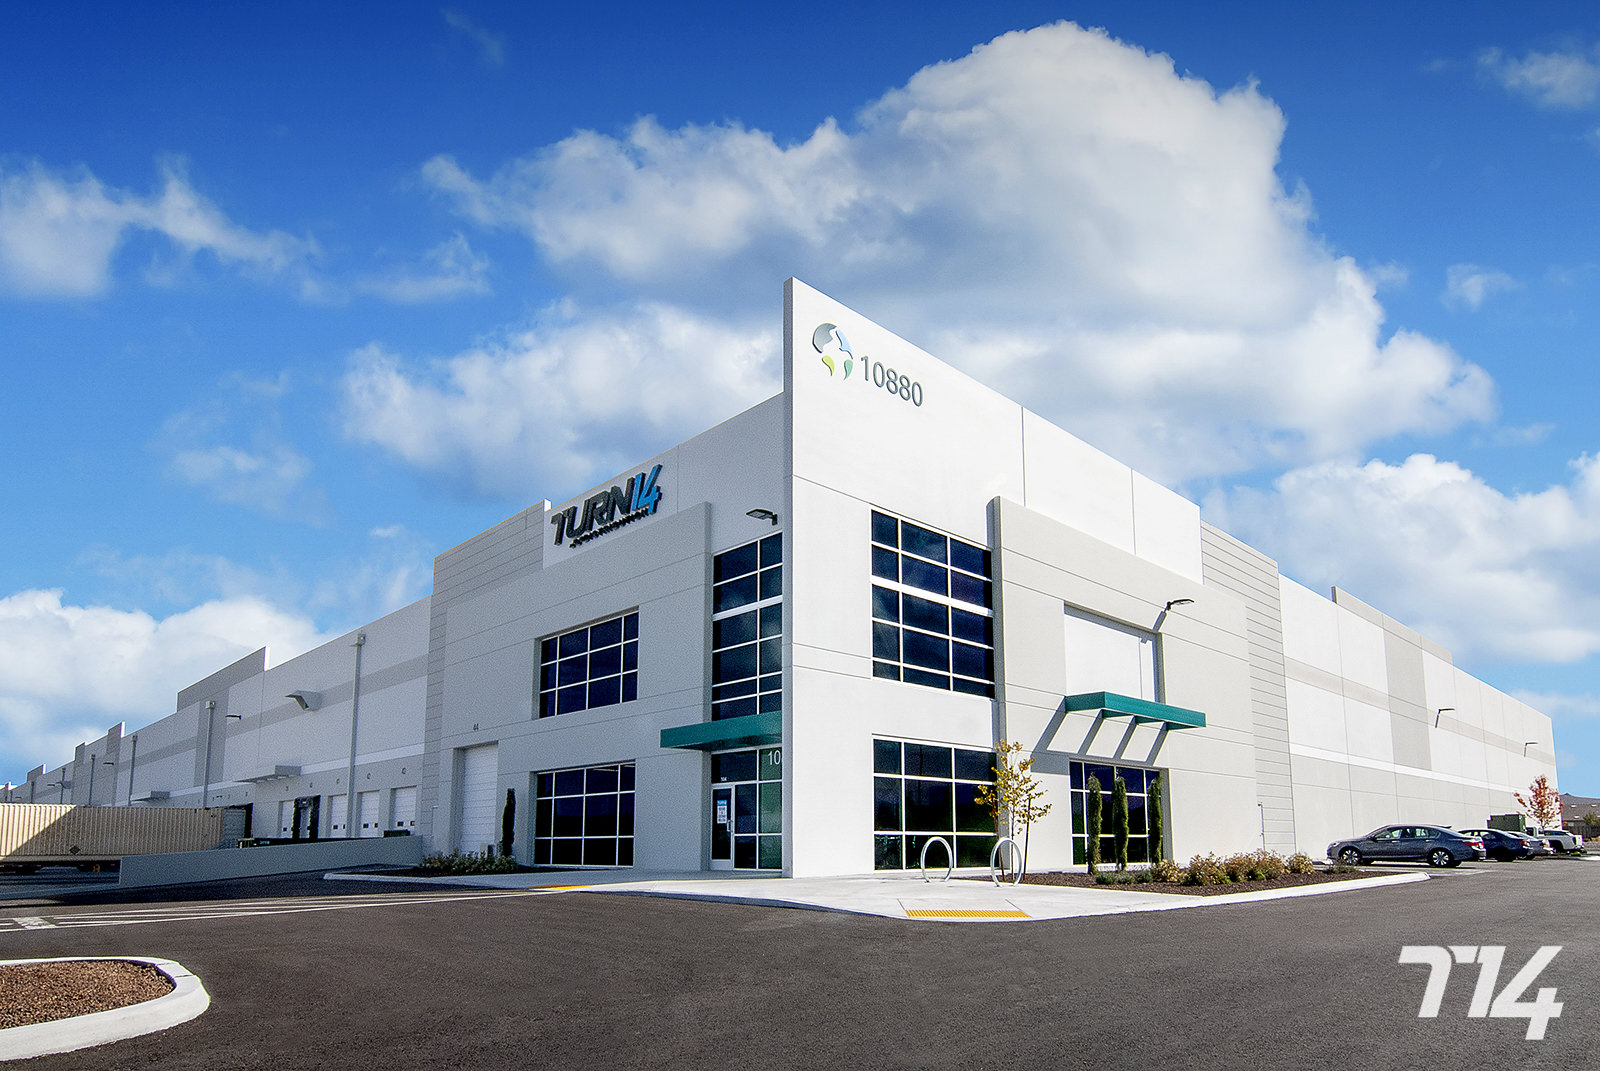 Turn 14 Distribution has opened its new Reno Distribution Center in Nevada.